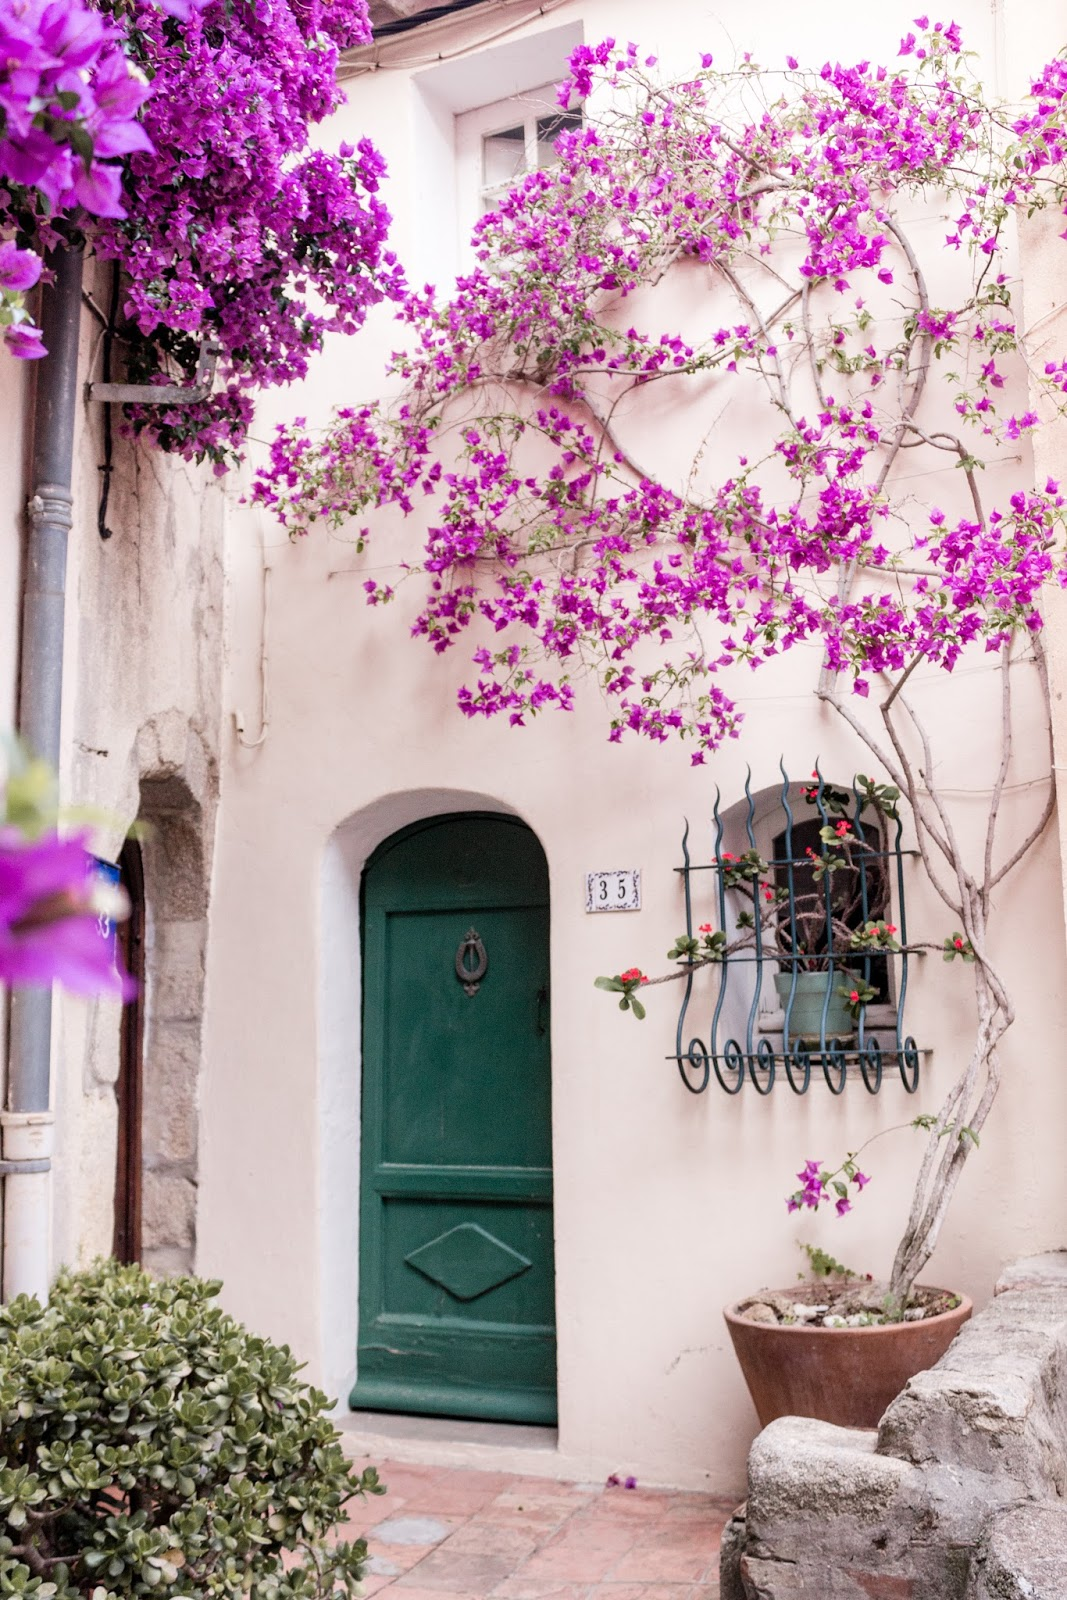 French country exterior with bold pink climbing vines and arched teal door. Photo: The Flying Dutchwoman. #frenchcountry #exterior #stucco #archeddoor #fuschia #brightpink #southoffrance #provence